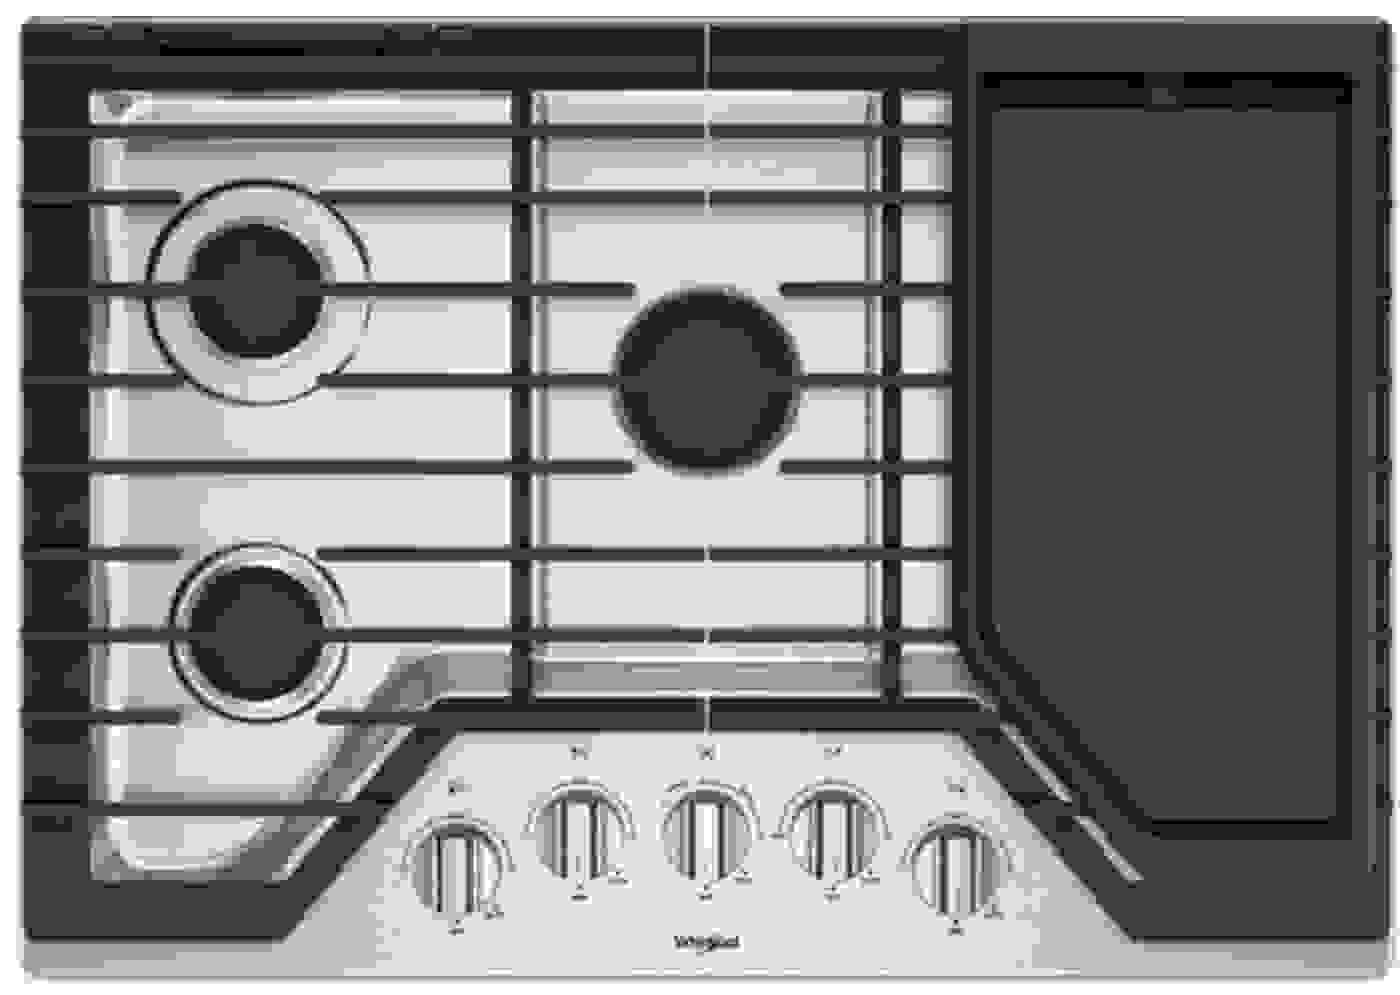 Wcg97us0hs By Whirlpool Natural Gas Cooktops Goedekers Com Gas Cooktop Cooktop Whirlpool